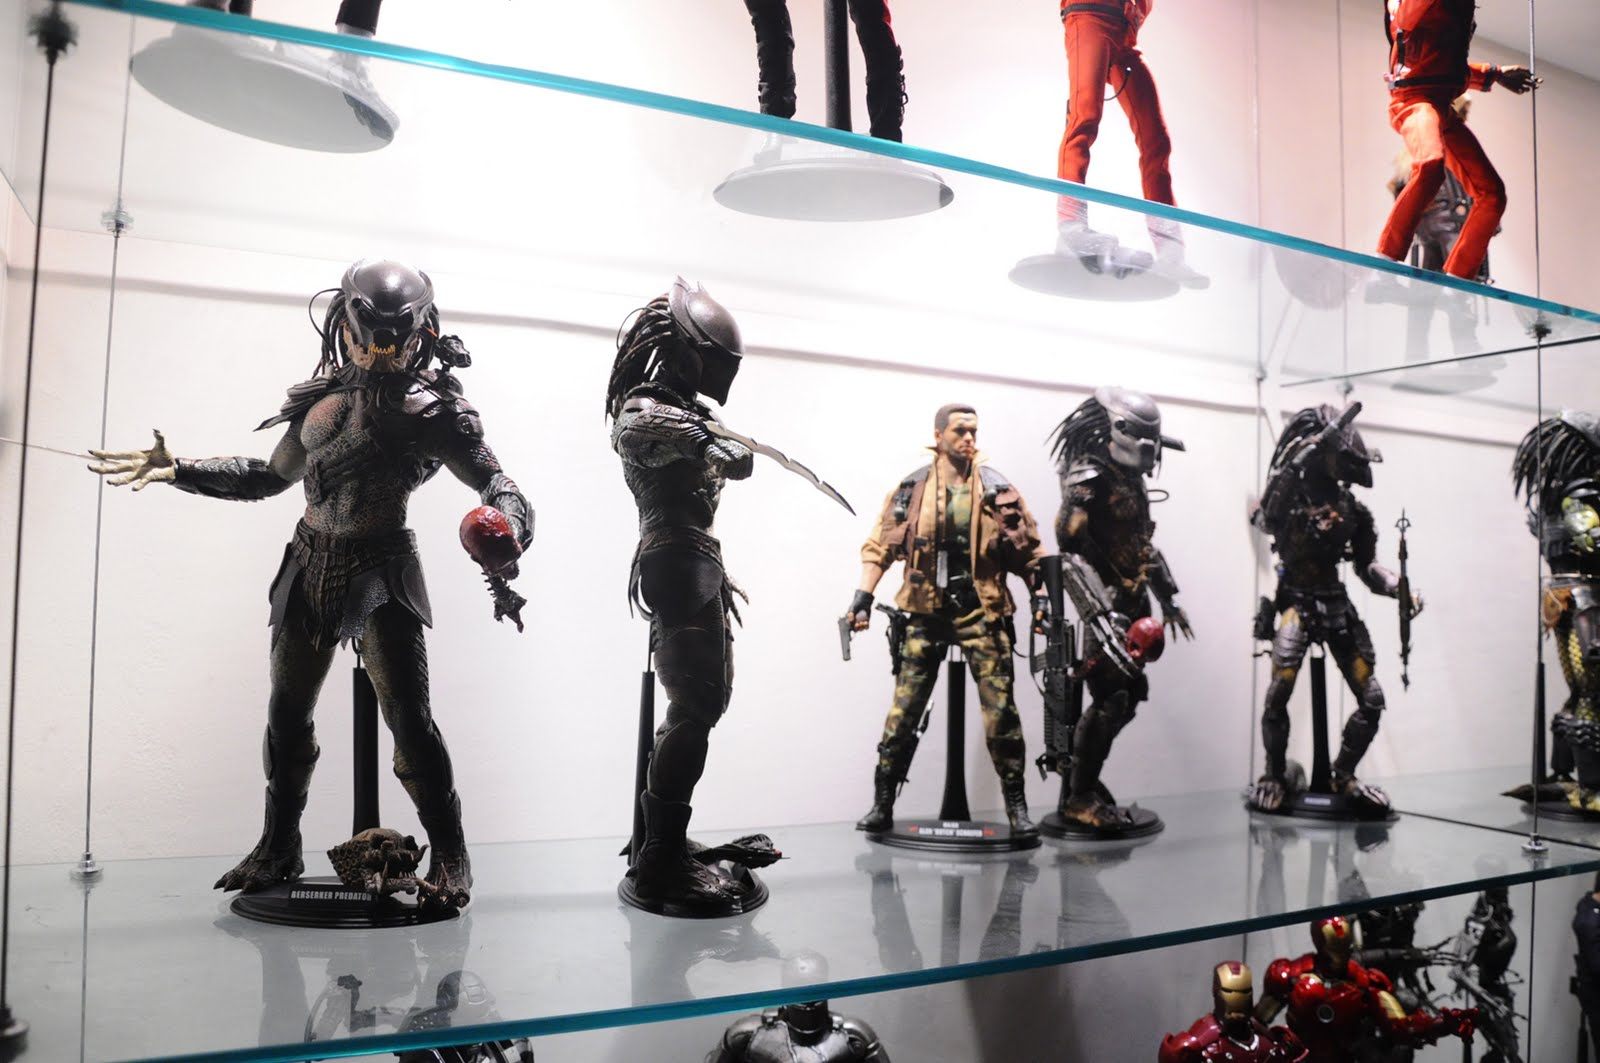 action figures on display